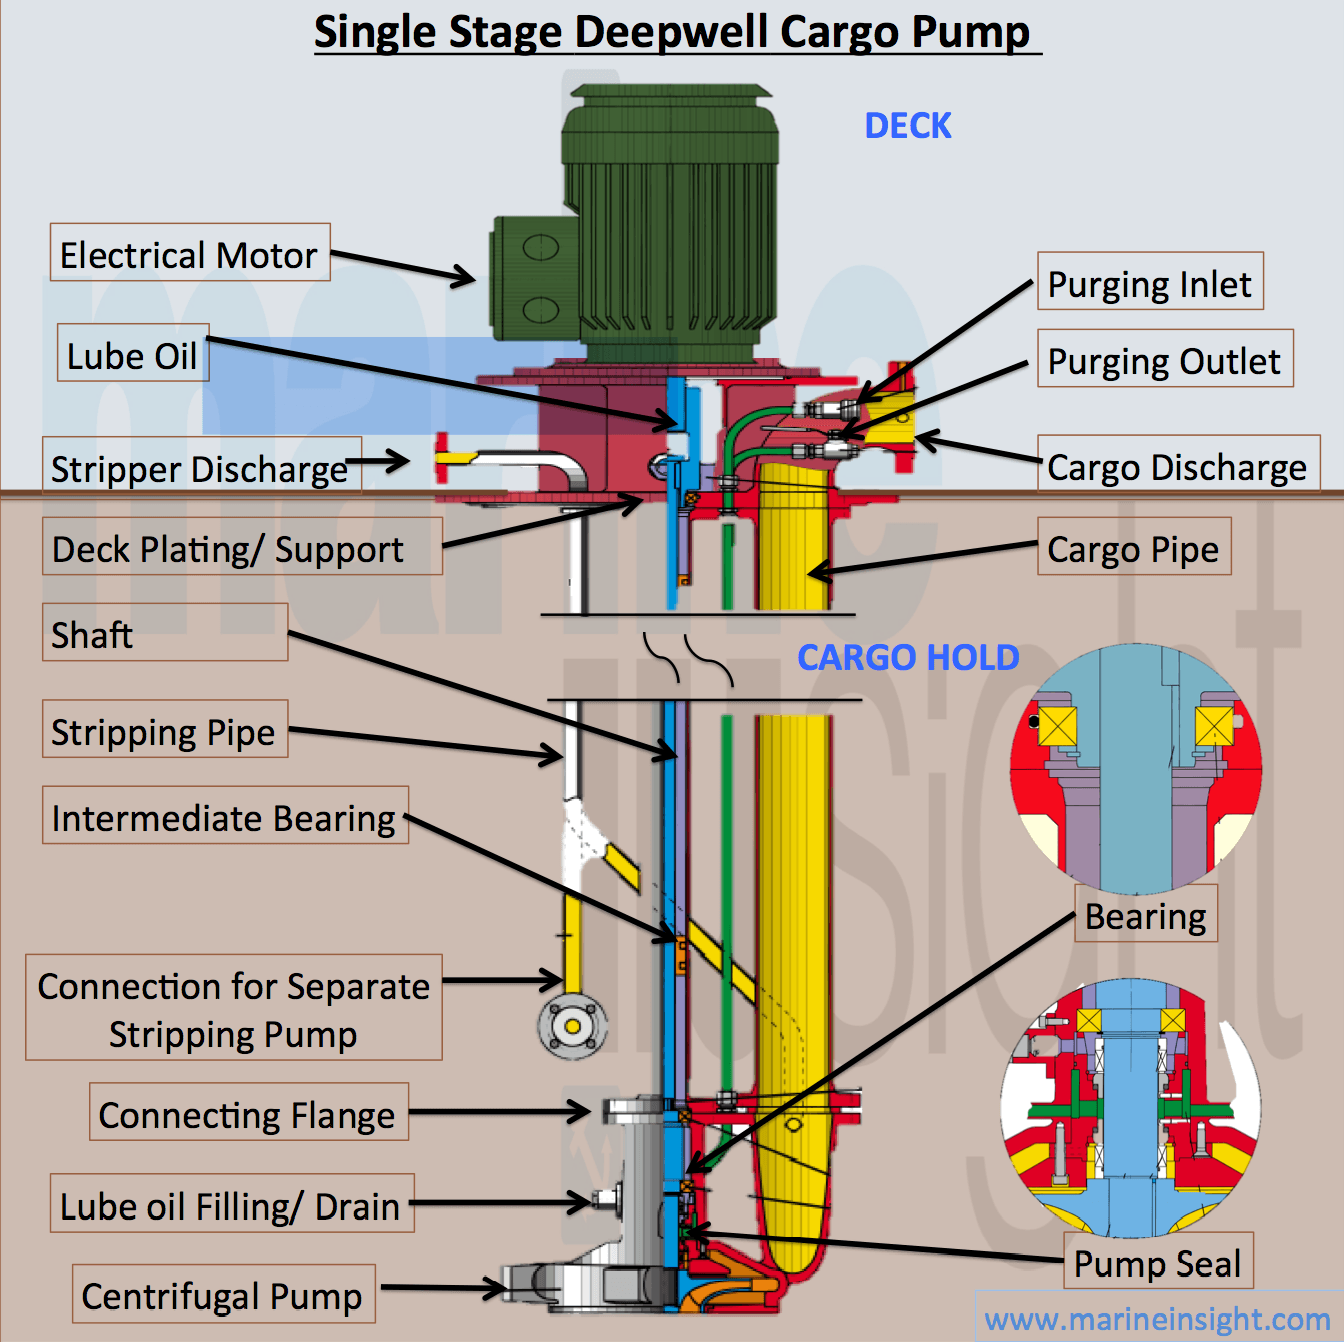 Wiring Diagram For Home Air Conditioner Simple Guide About Centrifugal Pump Shallow Well Water Flow Meter Mixed D